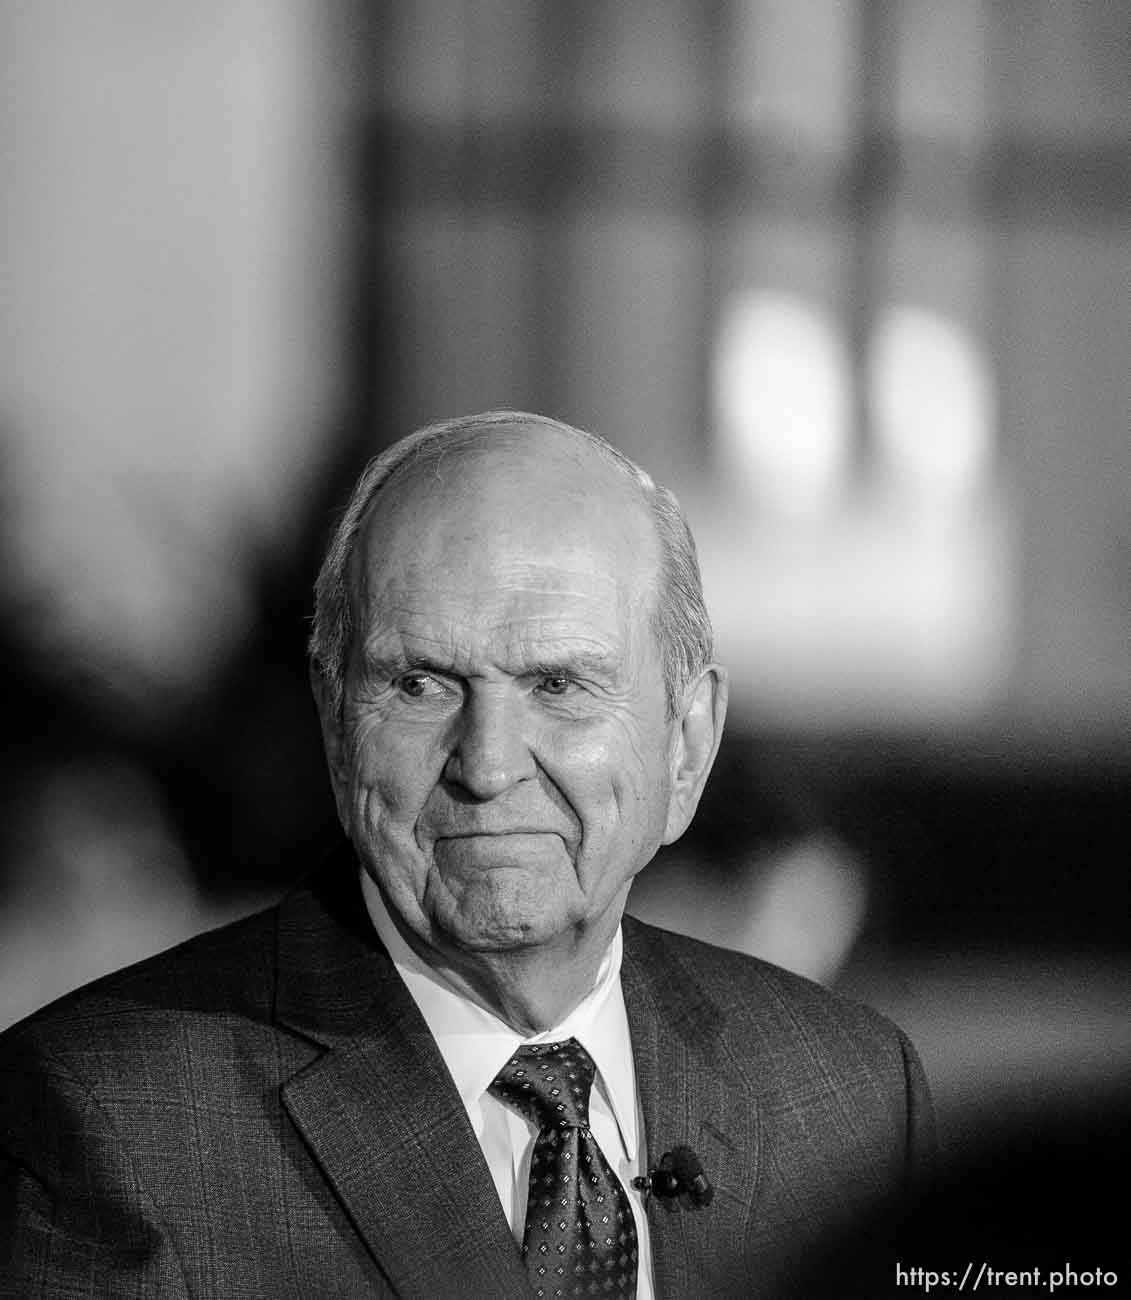 (Trent Nelson | The Salt Lake Tribune) Russell M. Nelson looks on as Dallin H. Oaks addresses members of the media at a news conference in the lobby of the Church Office Building in Salt Lake City, Tuesday January 16, 2018. Nelson was named the 17th president of the nearly 16 million-member Church of Jesus Christ of Latter-day Saints.